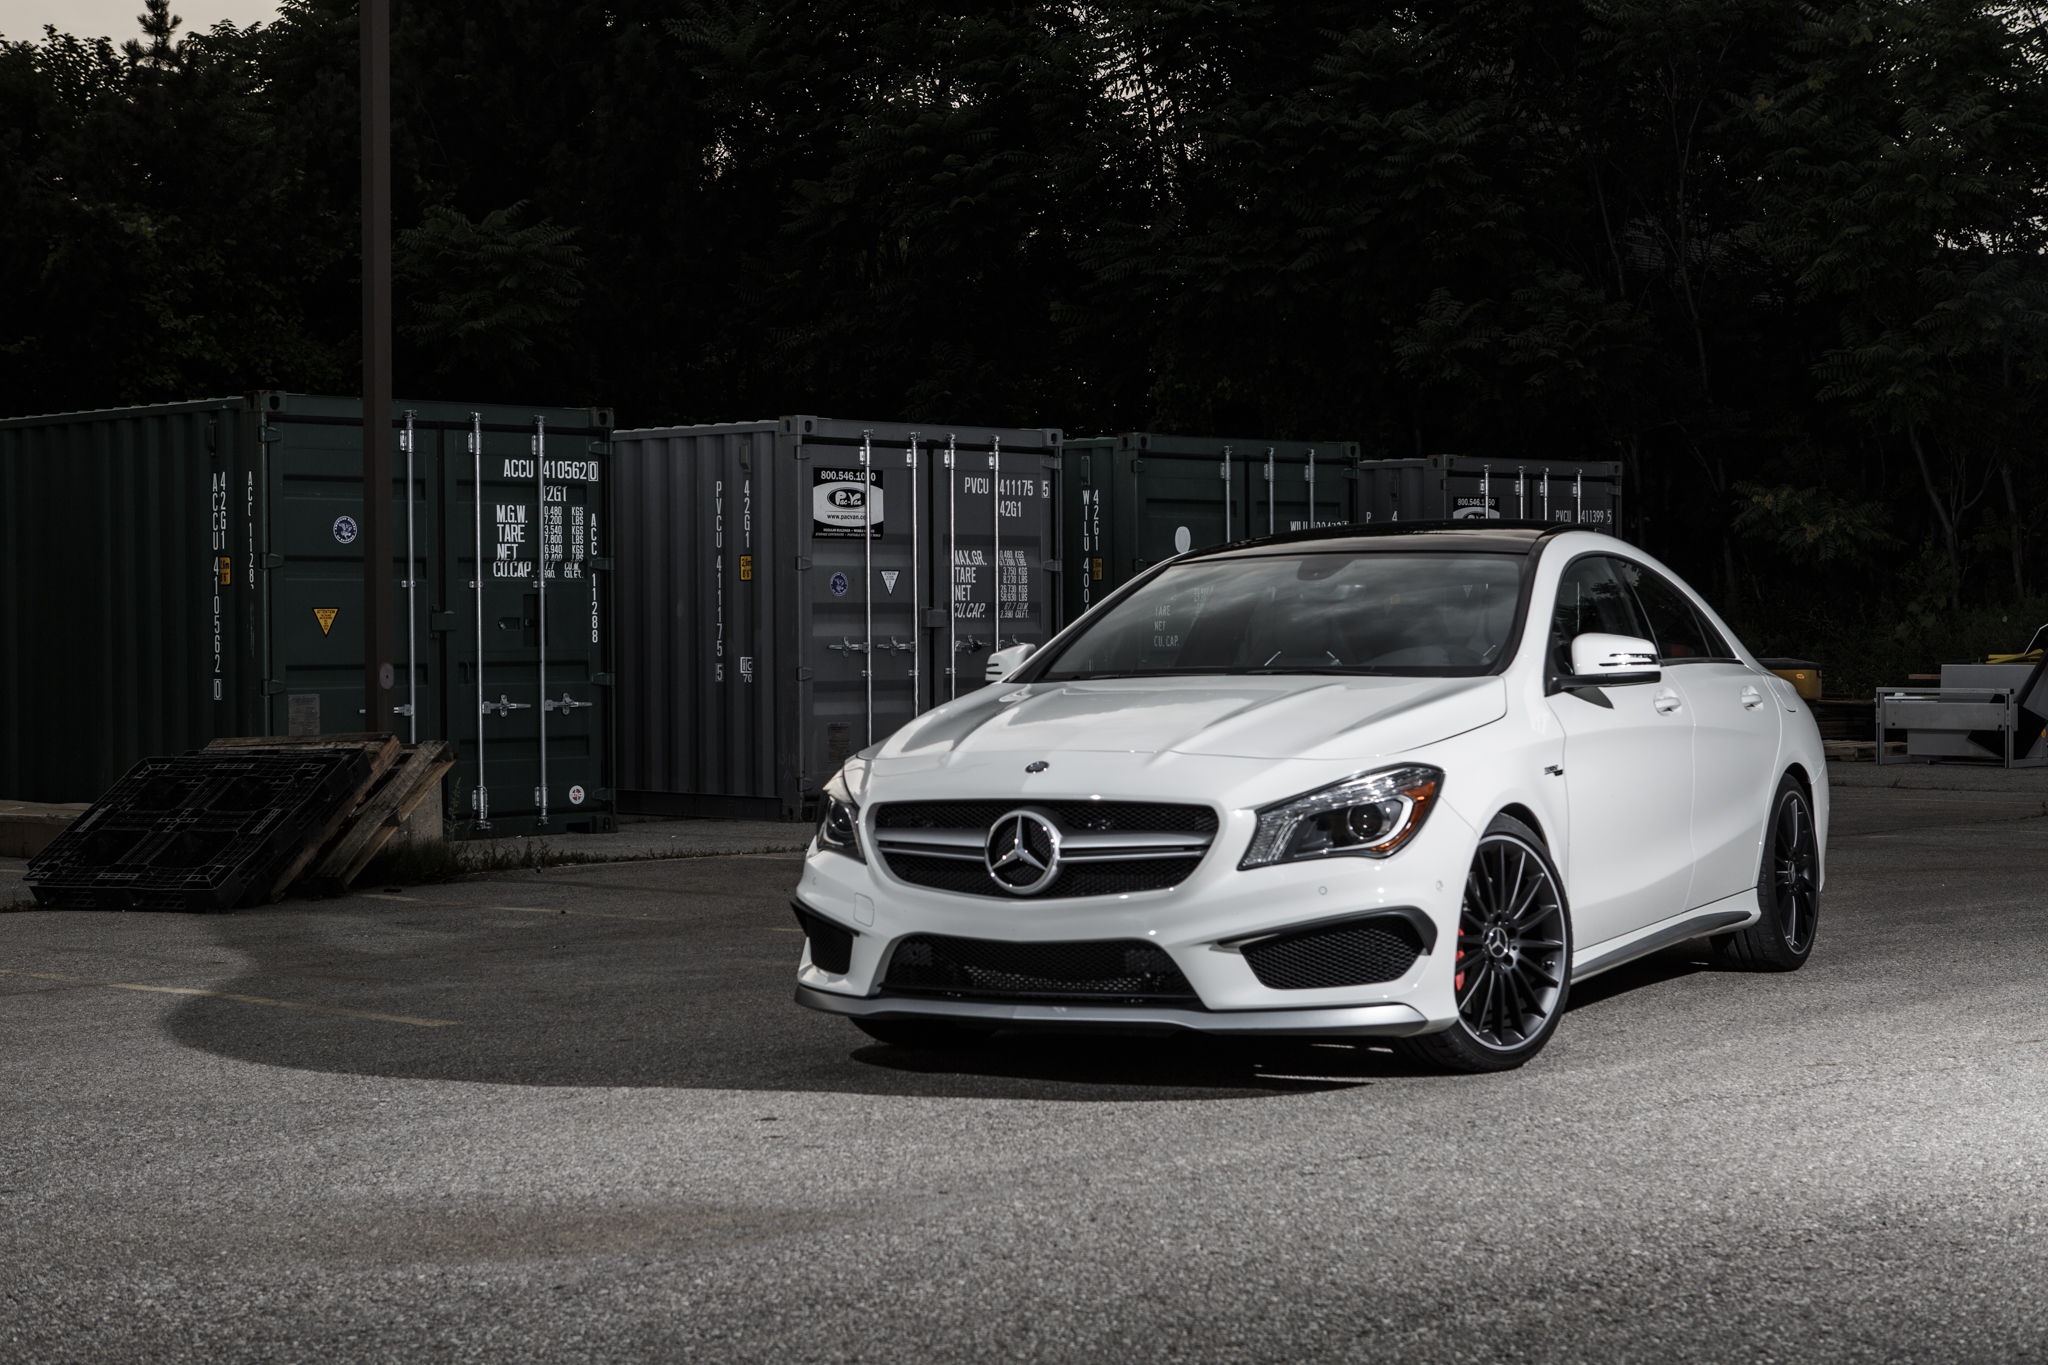 college-cars-24-2014-mercedes-benz-cla45-amg-front